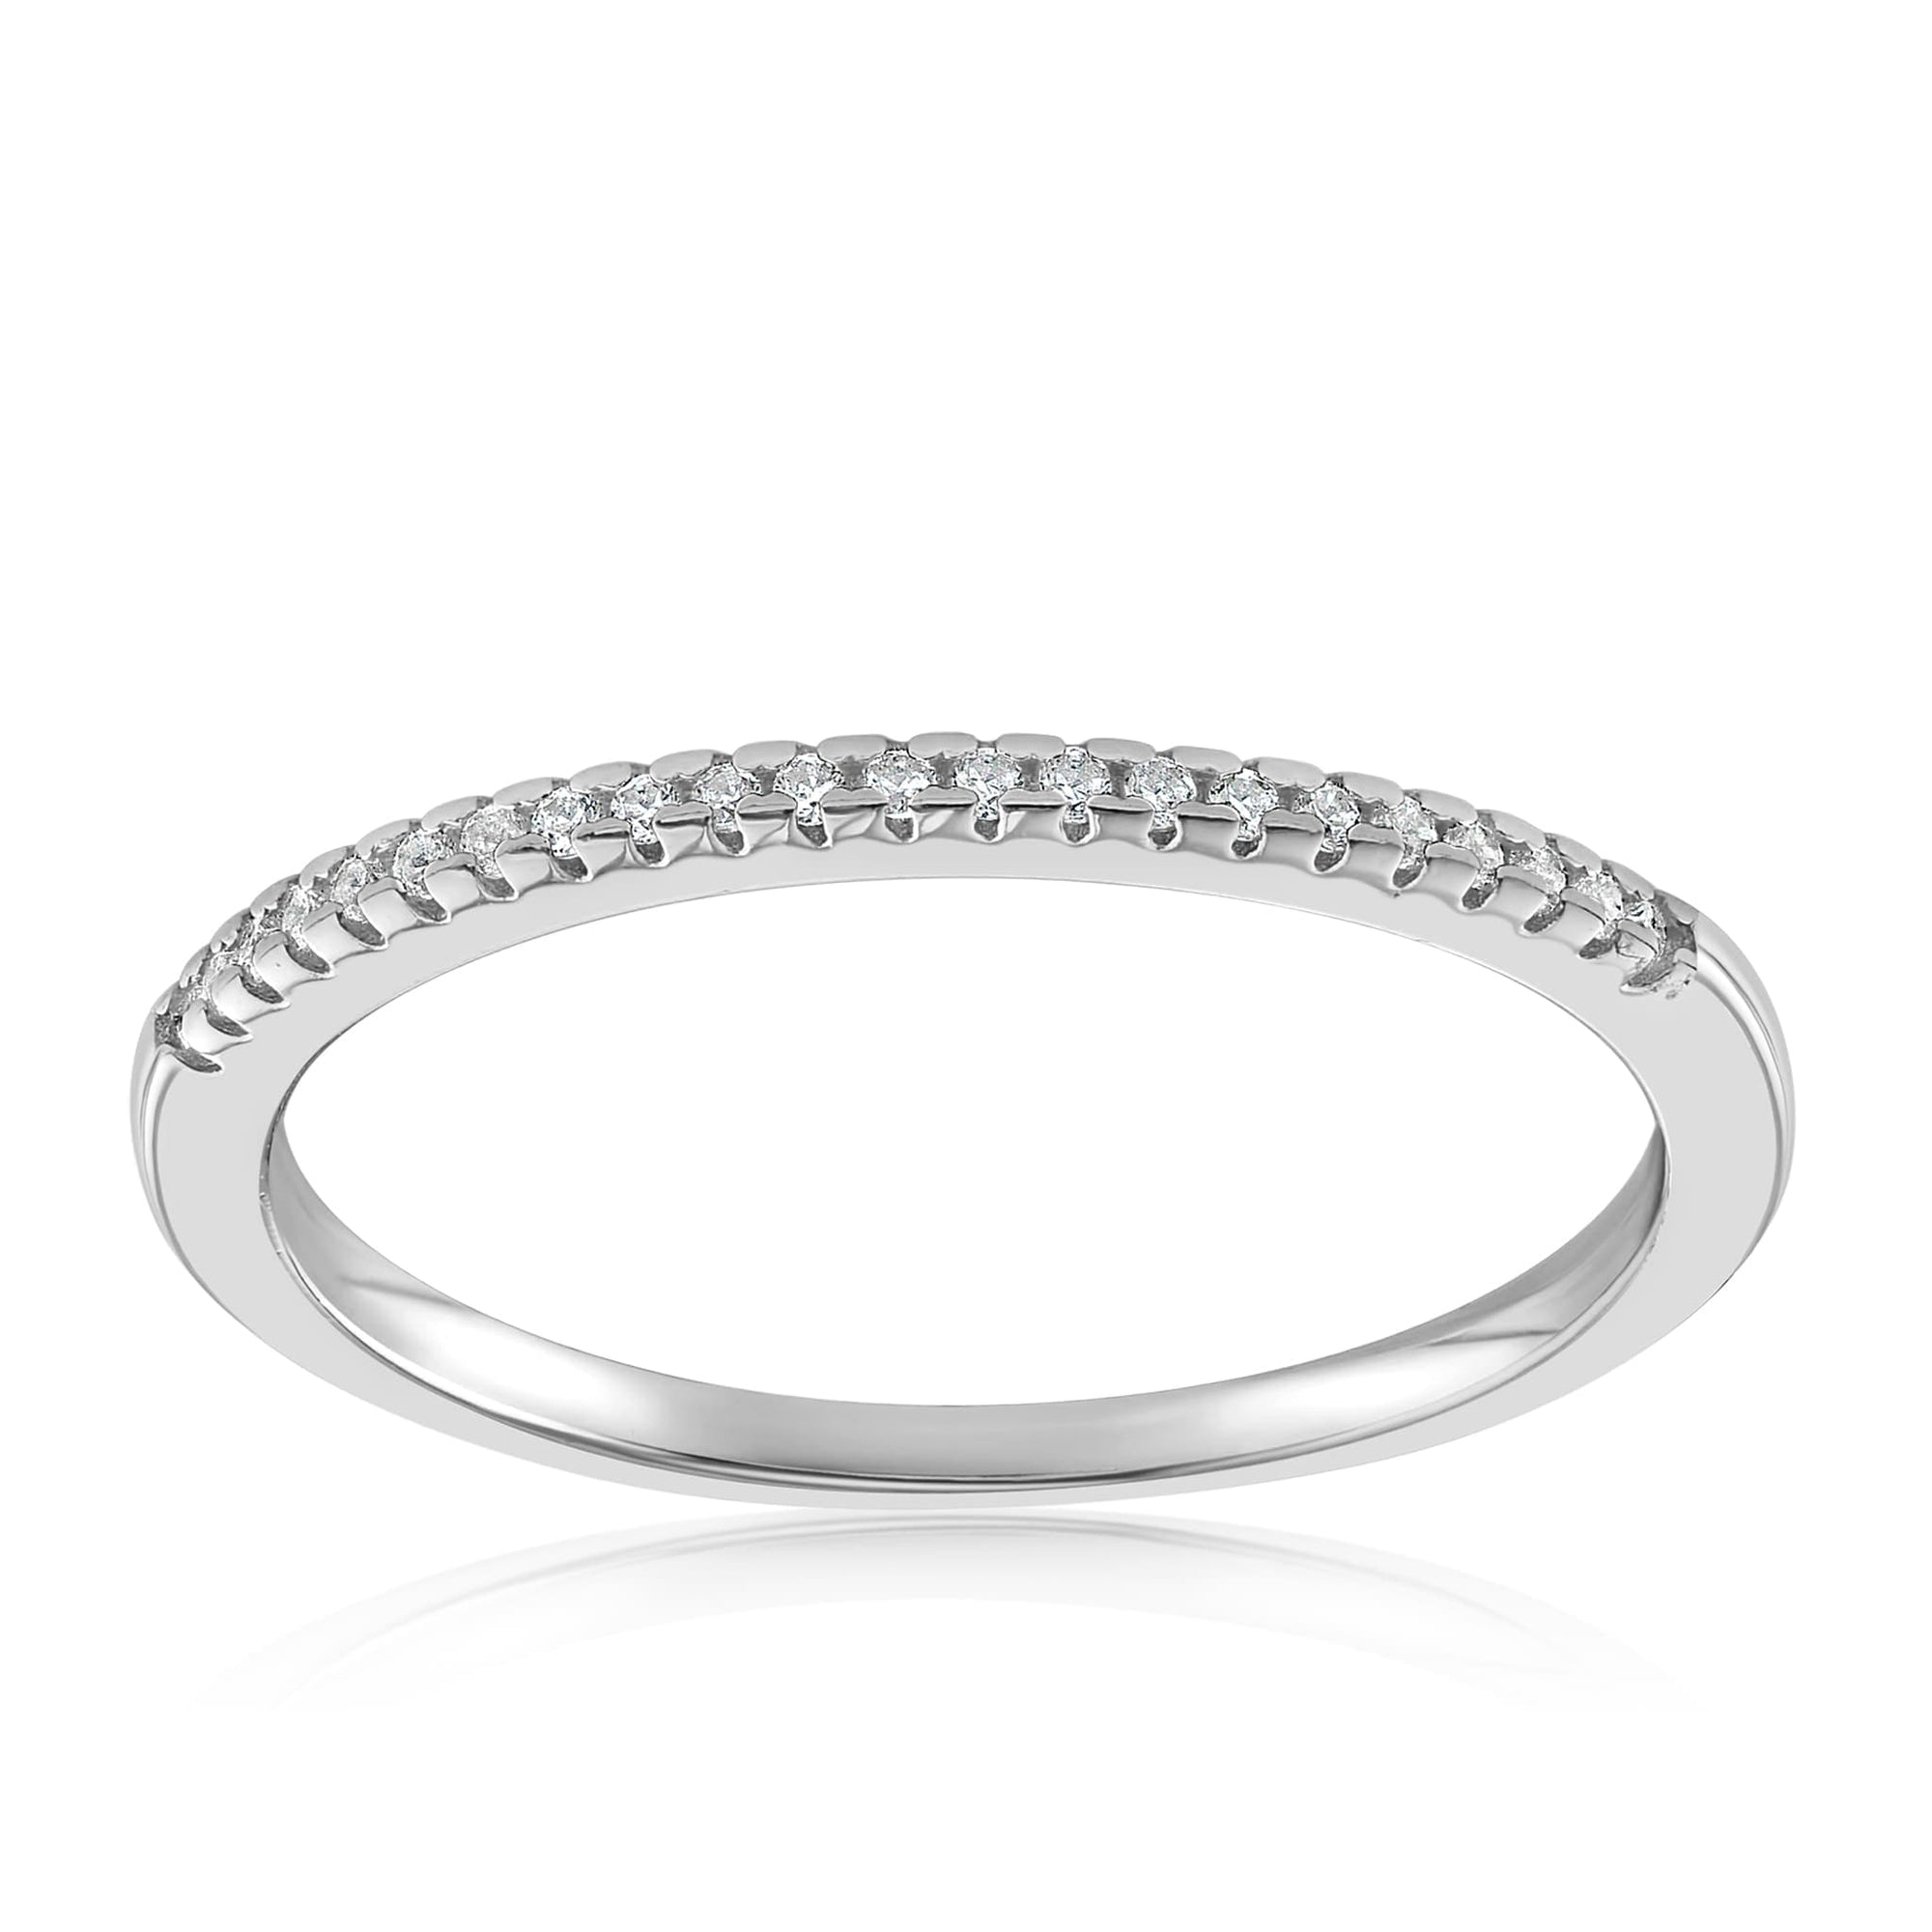 Brianna Bezel Ring - Front View Facing Up - 925 Sterling Silver